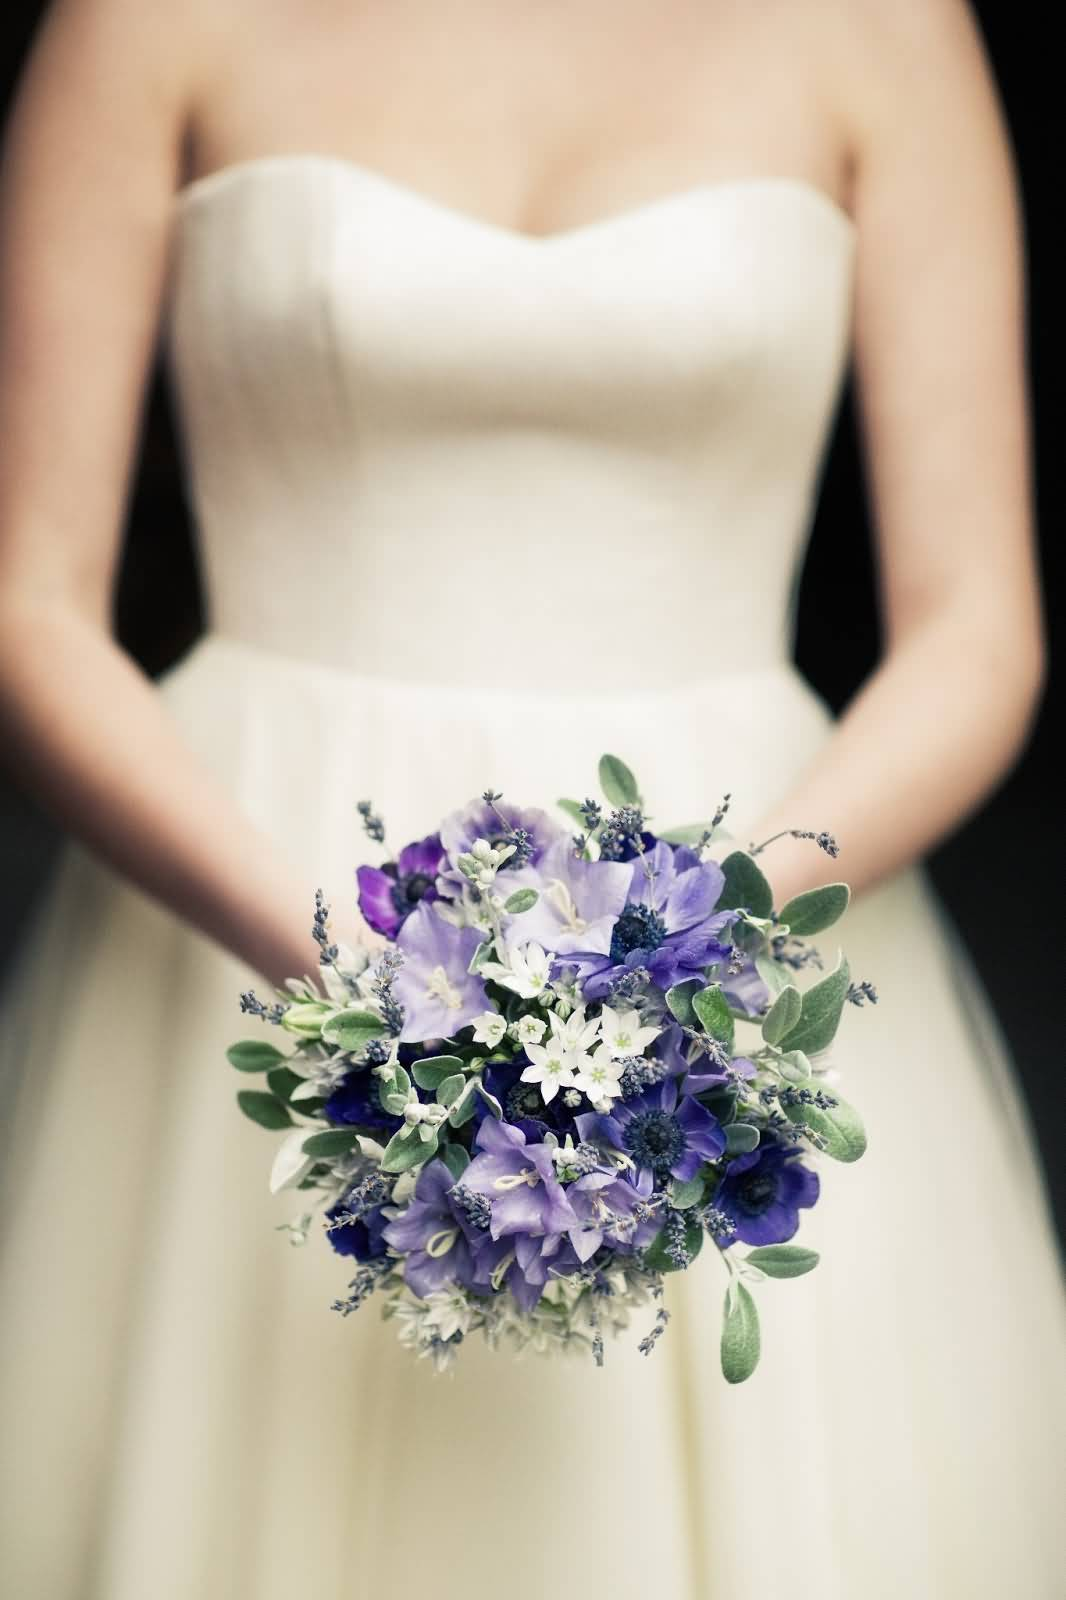 Awesome Bluebell Flower Bouquet In Girl Hands Wallpaper